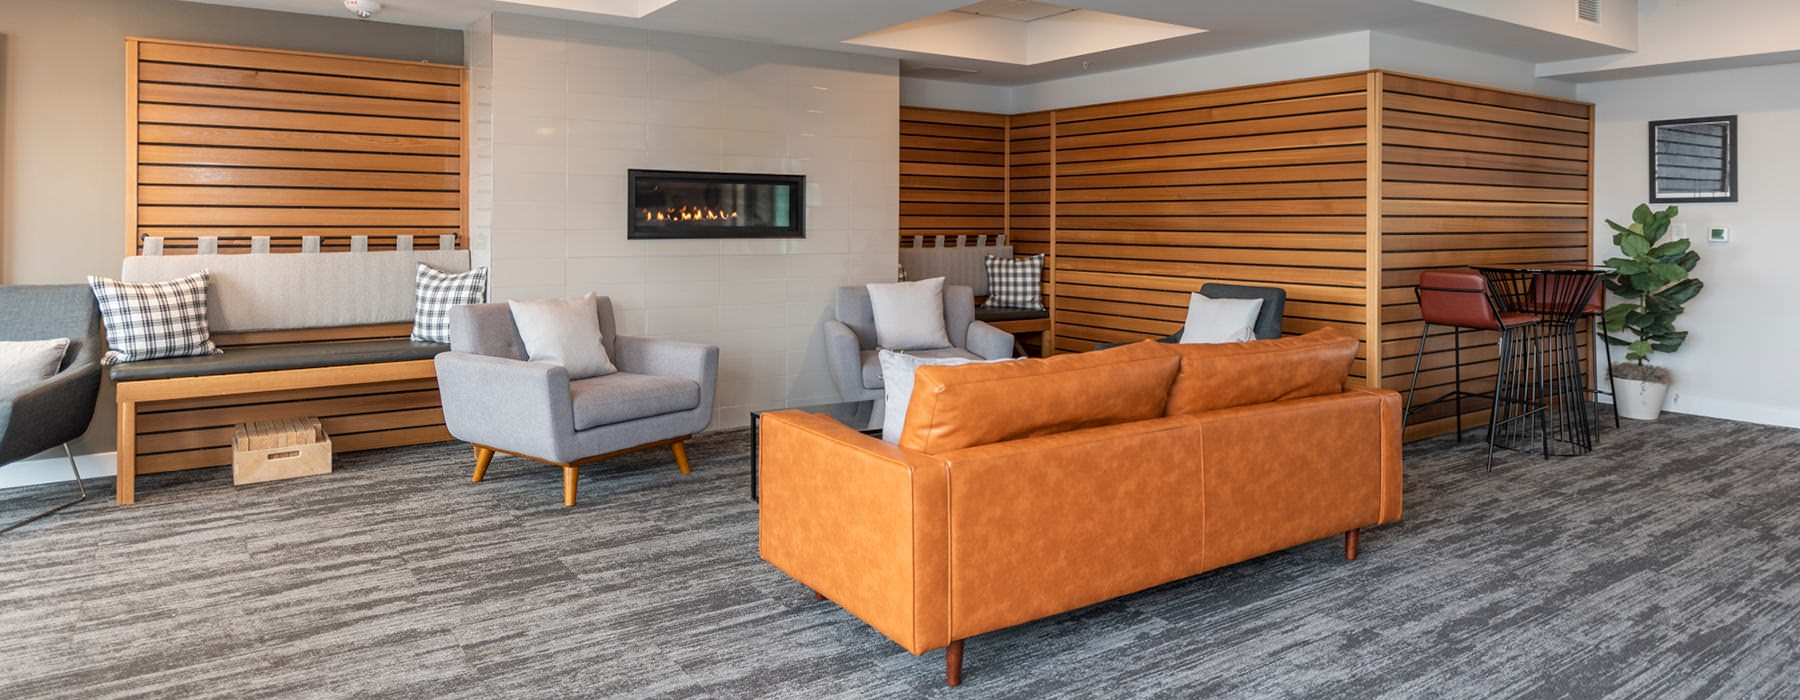 luxurious lounge seating areas